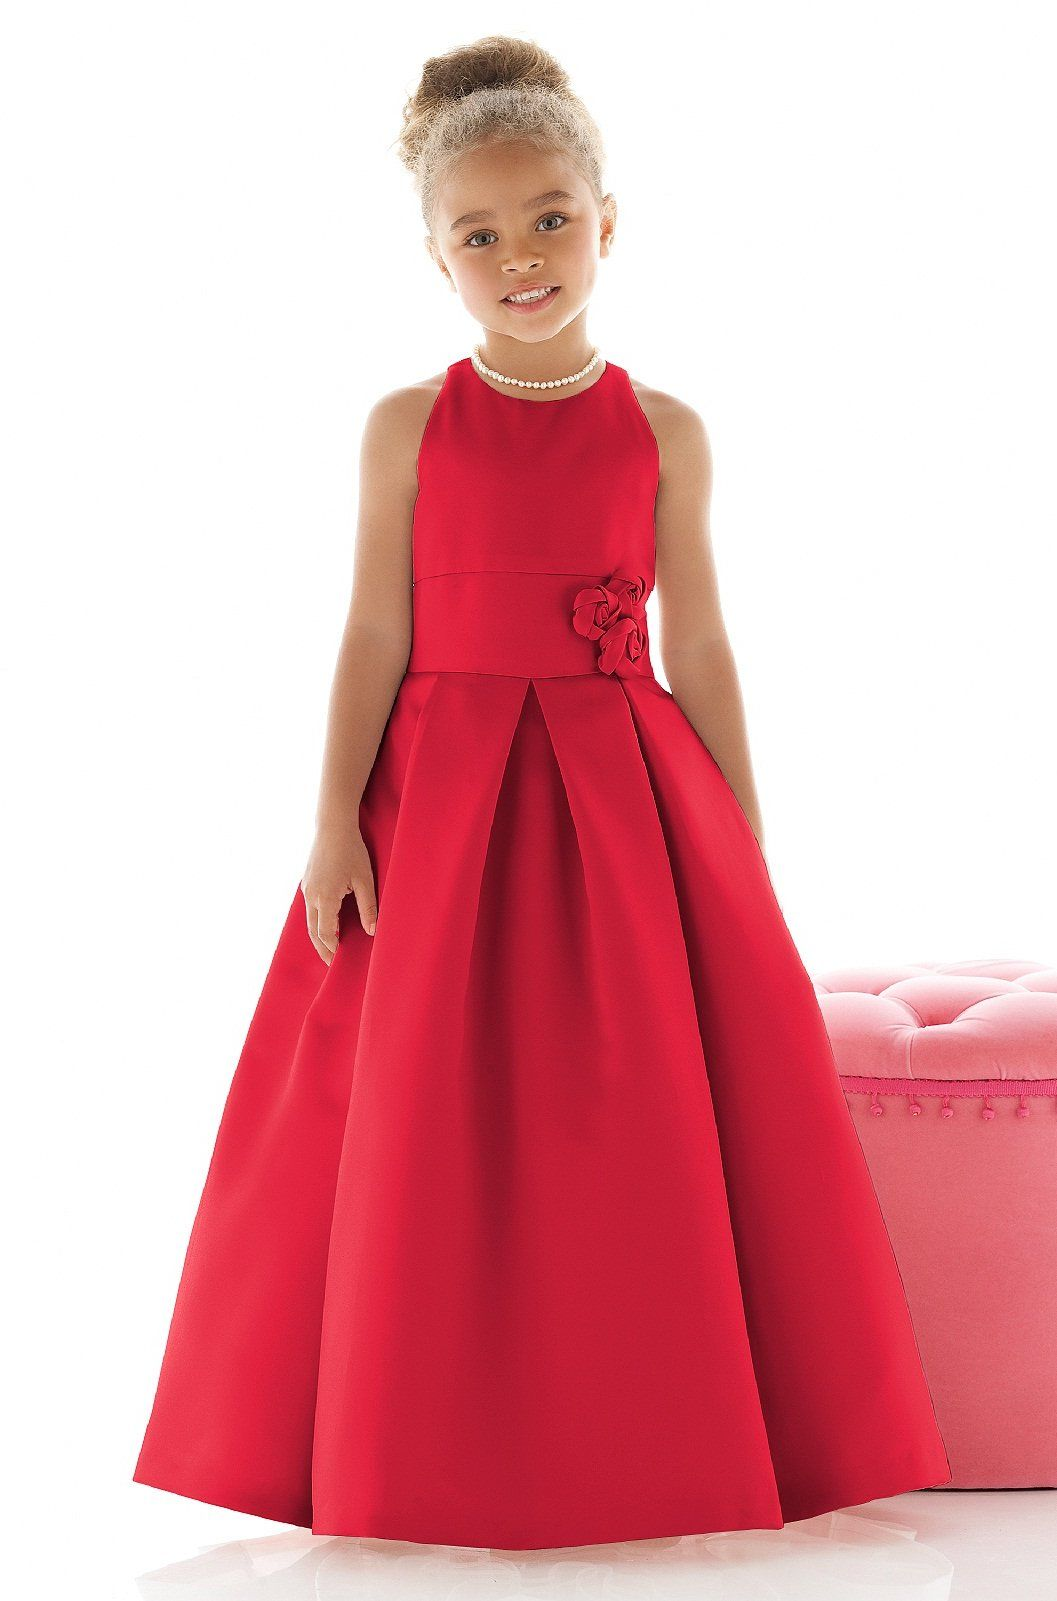 Flower girl dress wedding bridemaids flowergirls boys for Dresses for girls wedding